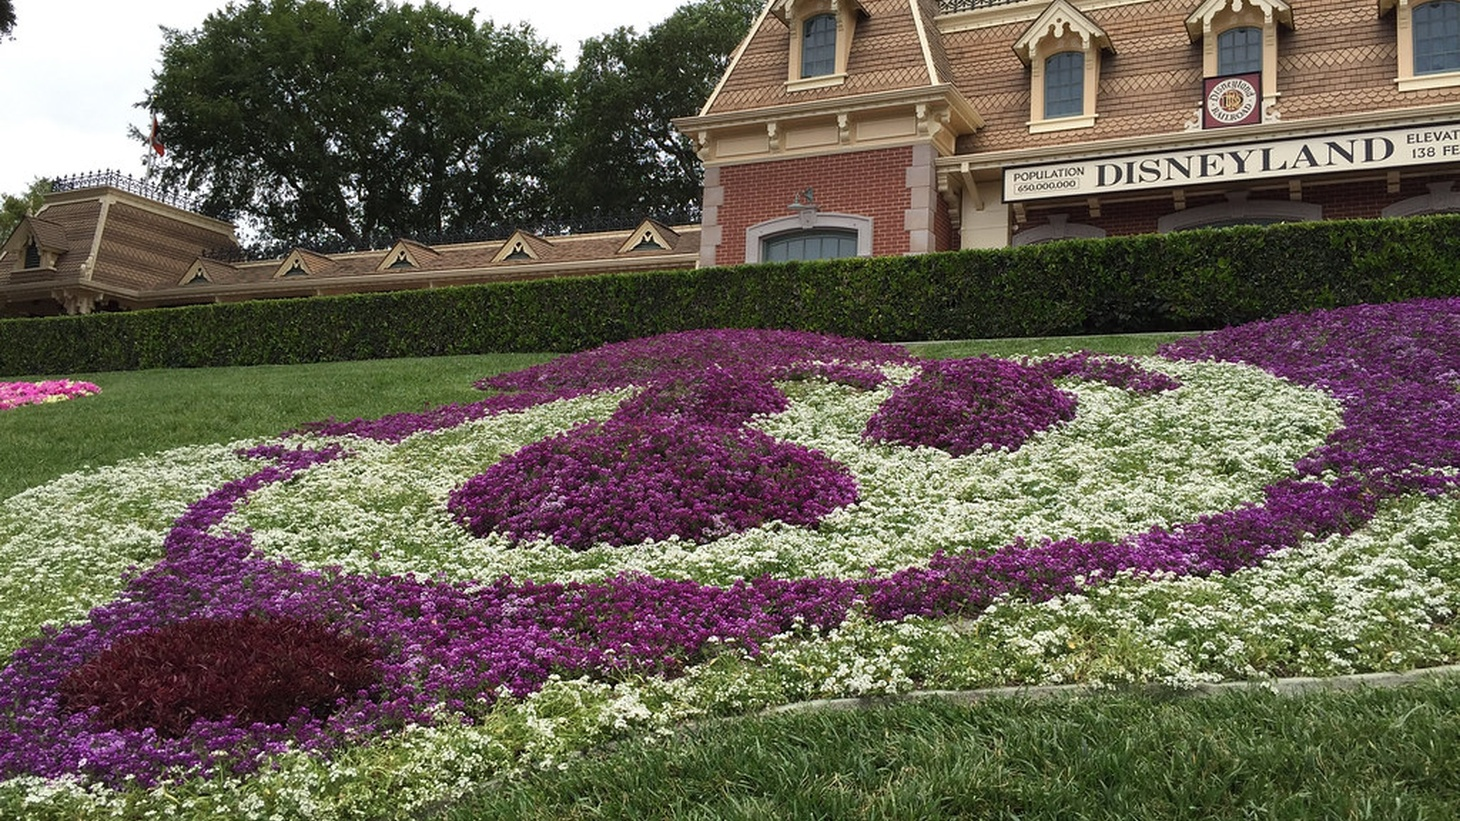 Due to spiking coronavirus numbers, Disneyland will no longer reopen on July 17, as previously announced. No new reopening date has been given.